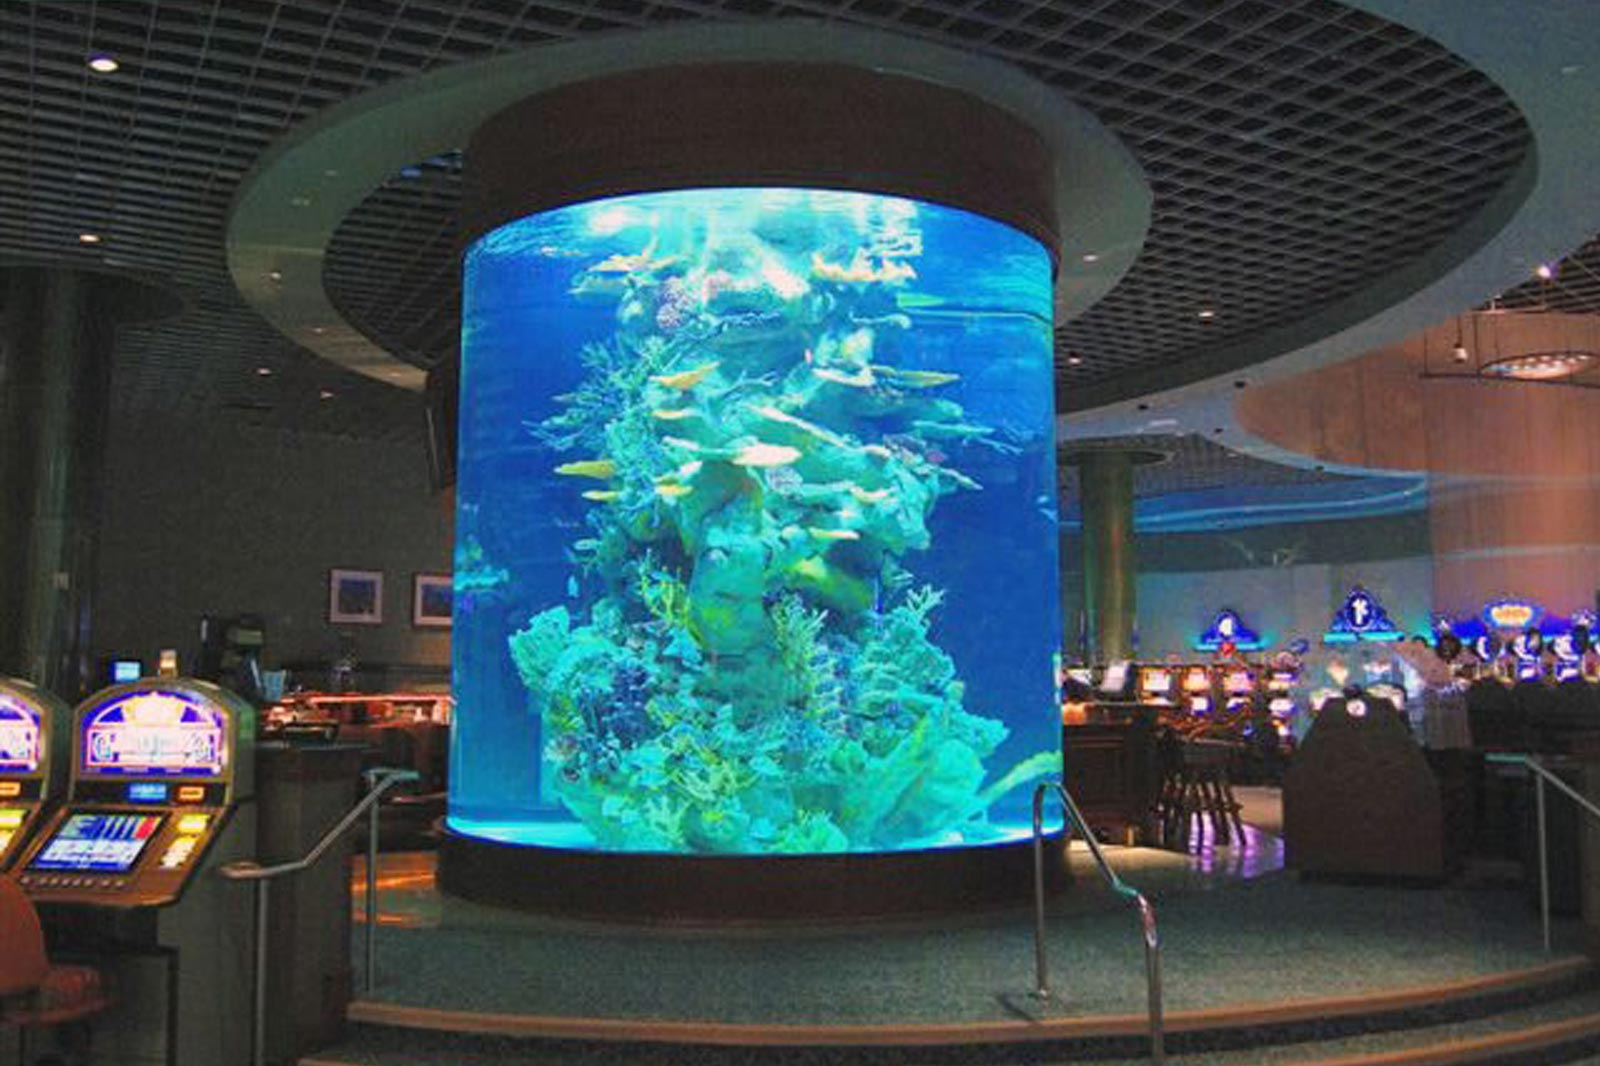 Aquarium Tank Maintenance by Classique Plastics for the Star Casino Australia